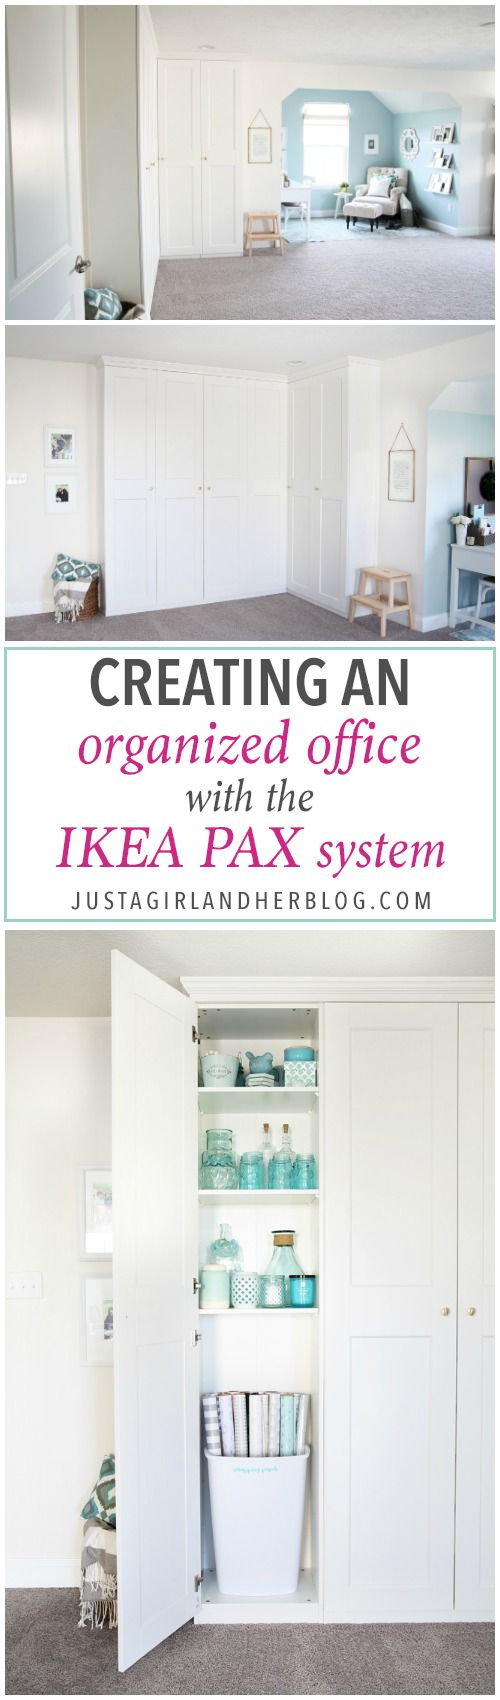 Creating an Organized Office with the IKEA PAX System - Just a Girl and Her Blog